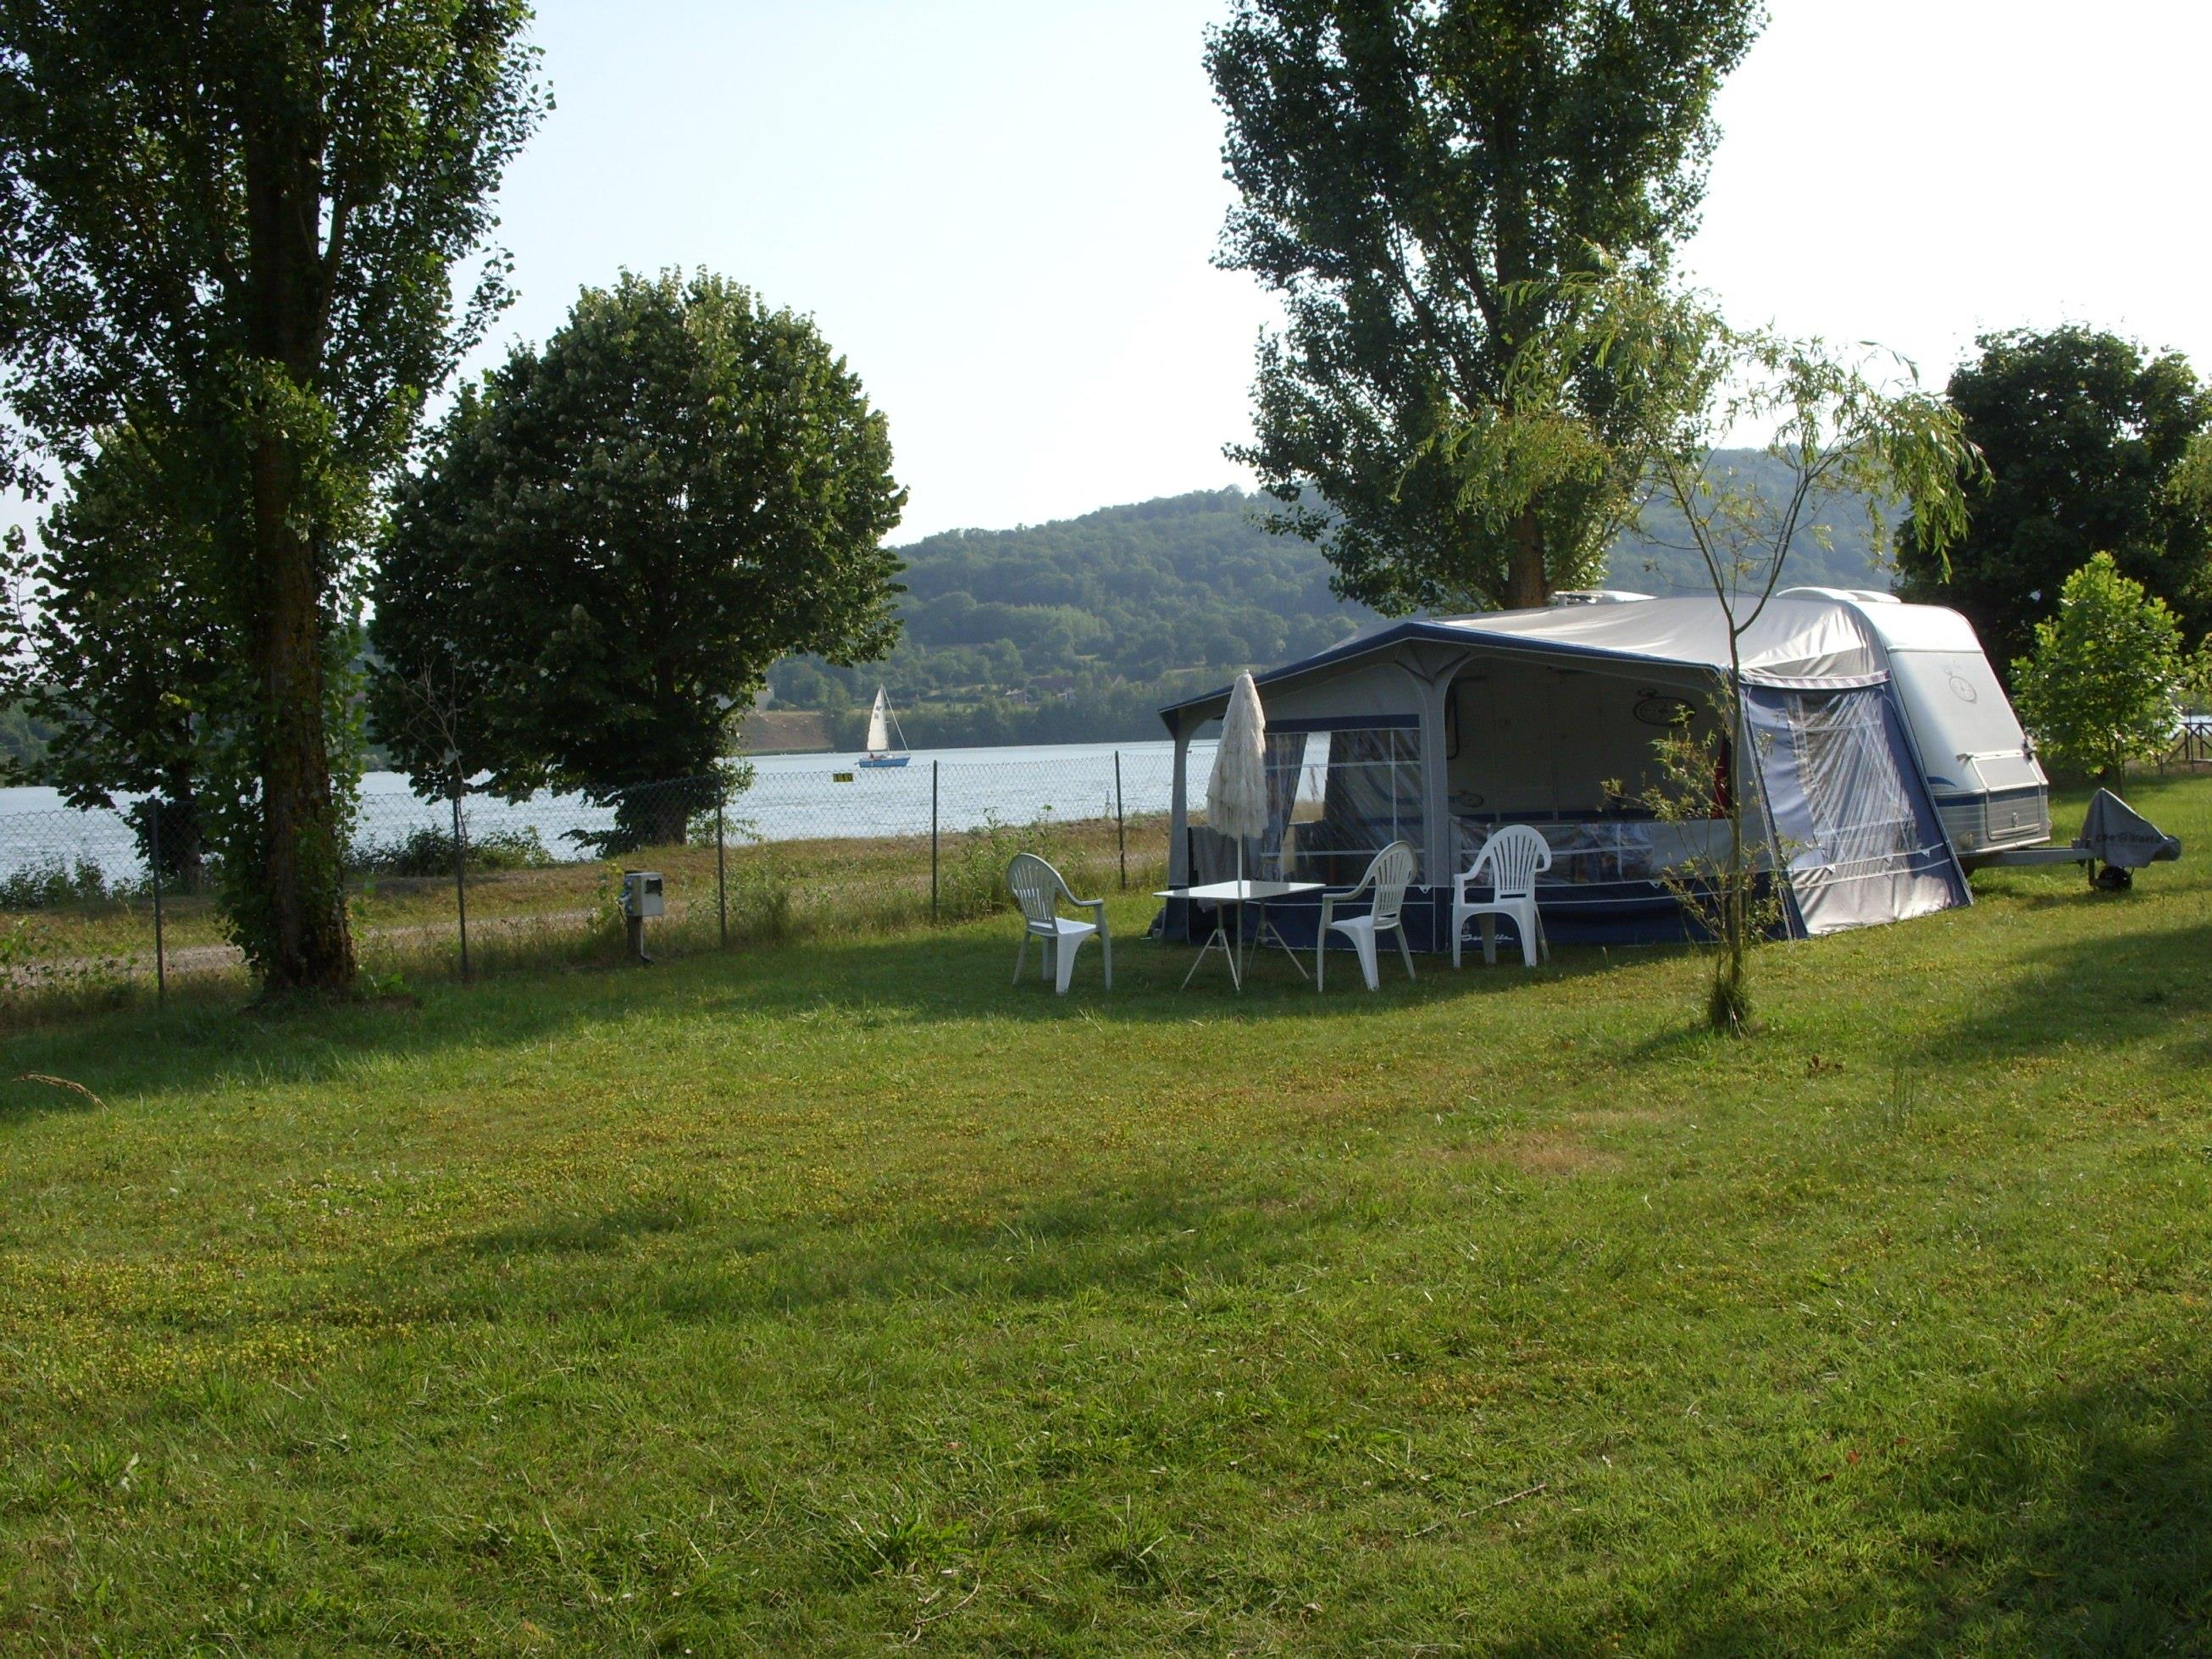 Pitch - Package Privilège, By The River, With Electricity 6A - Camping Ile de la Comtesse